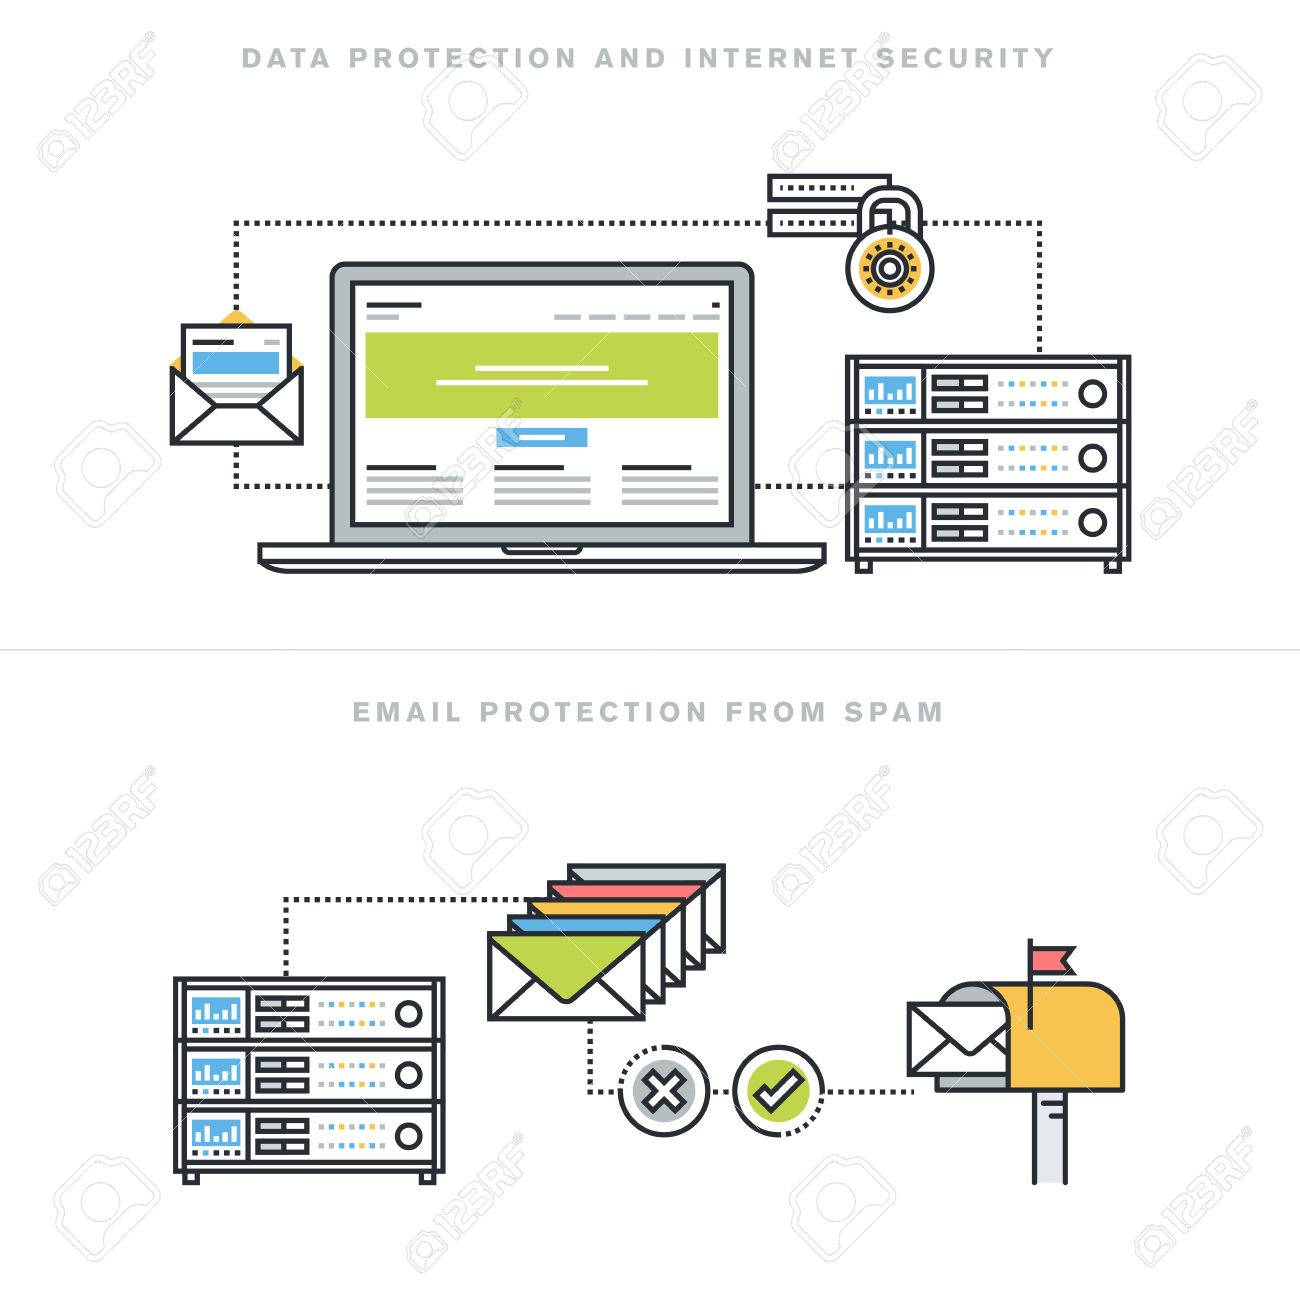 Flat line design vector illustration concepts for data protection and internet security, online safety, email protection from spam, email security software, for website banner and landing page. Stock Vector - 47546794